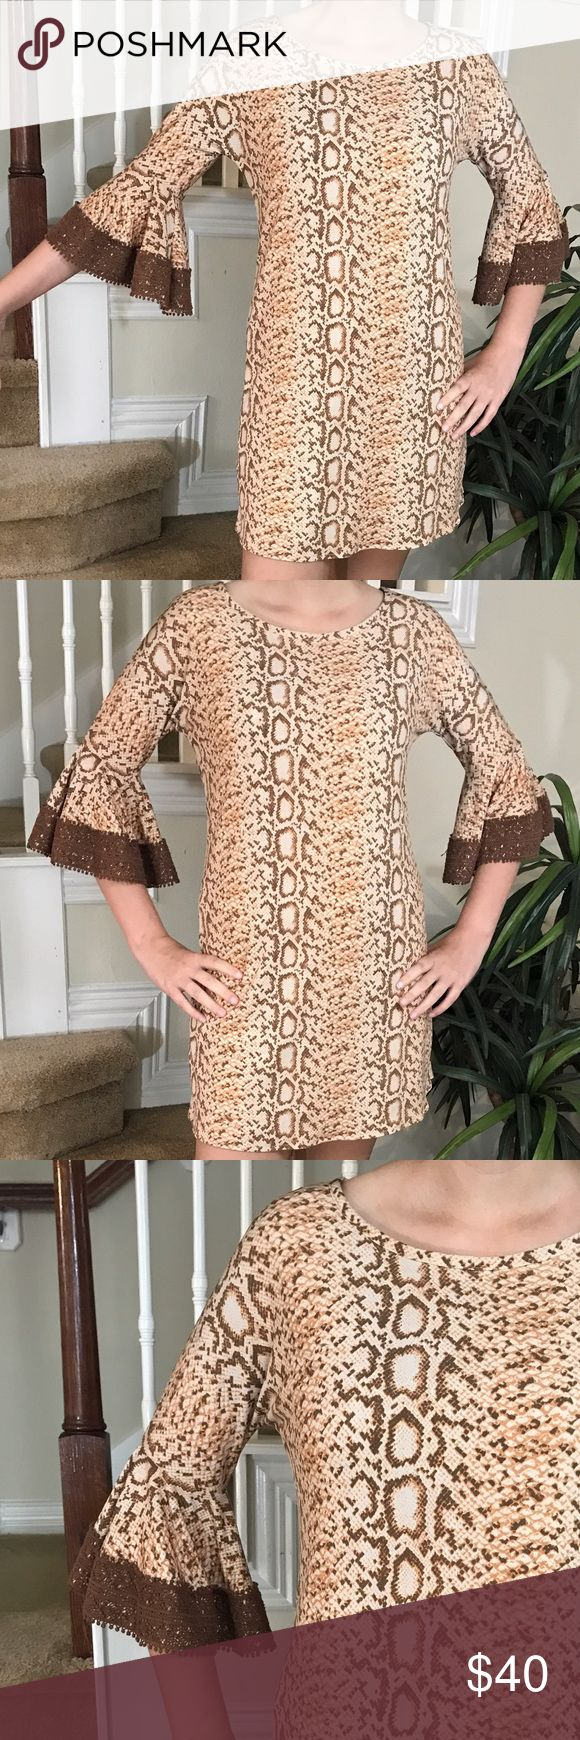 Judith March Crochet flare sleeve dress Gorgeous alert! This Judith March is amazing with its flared Crochet sleeves, animal print sheath, fully lined, popover style and in great condition! Love this one!!! Judith March Dresses